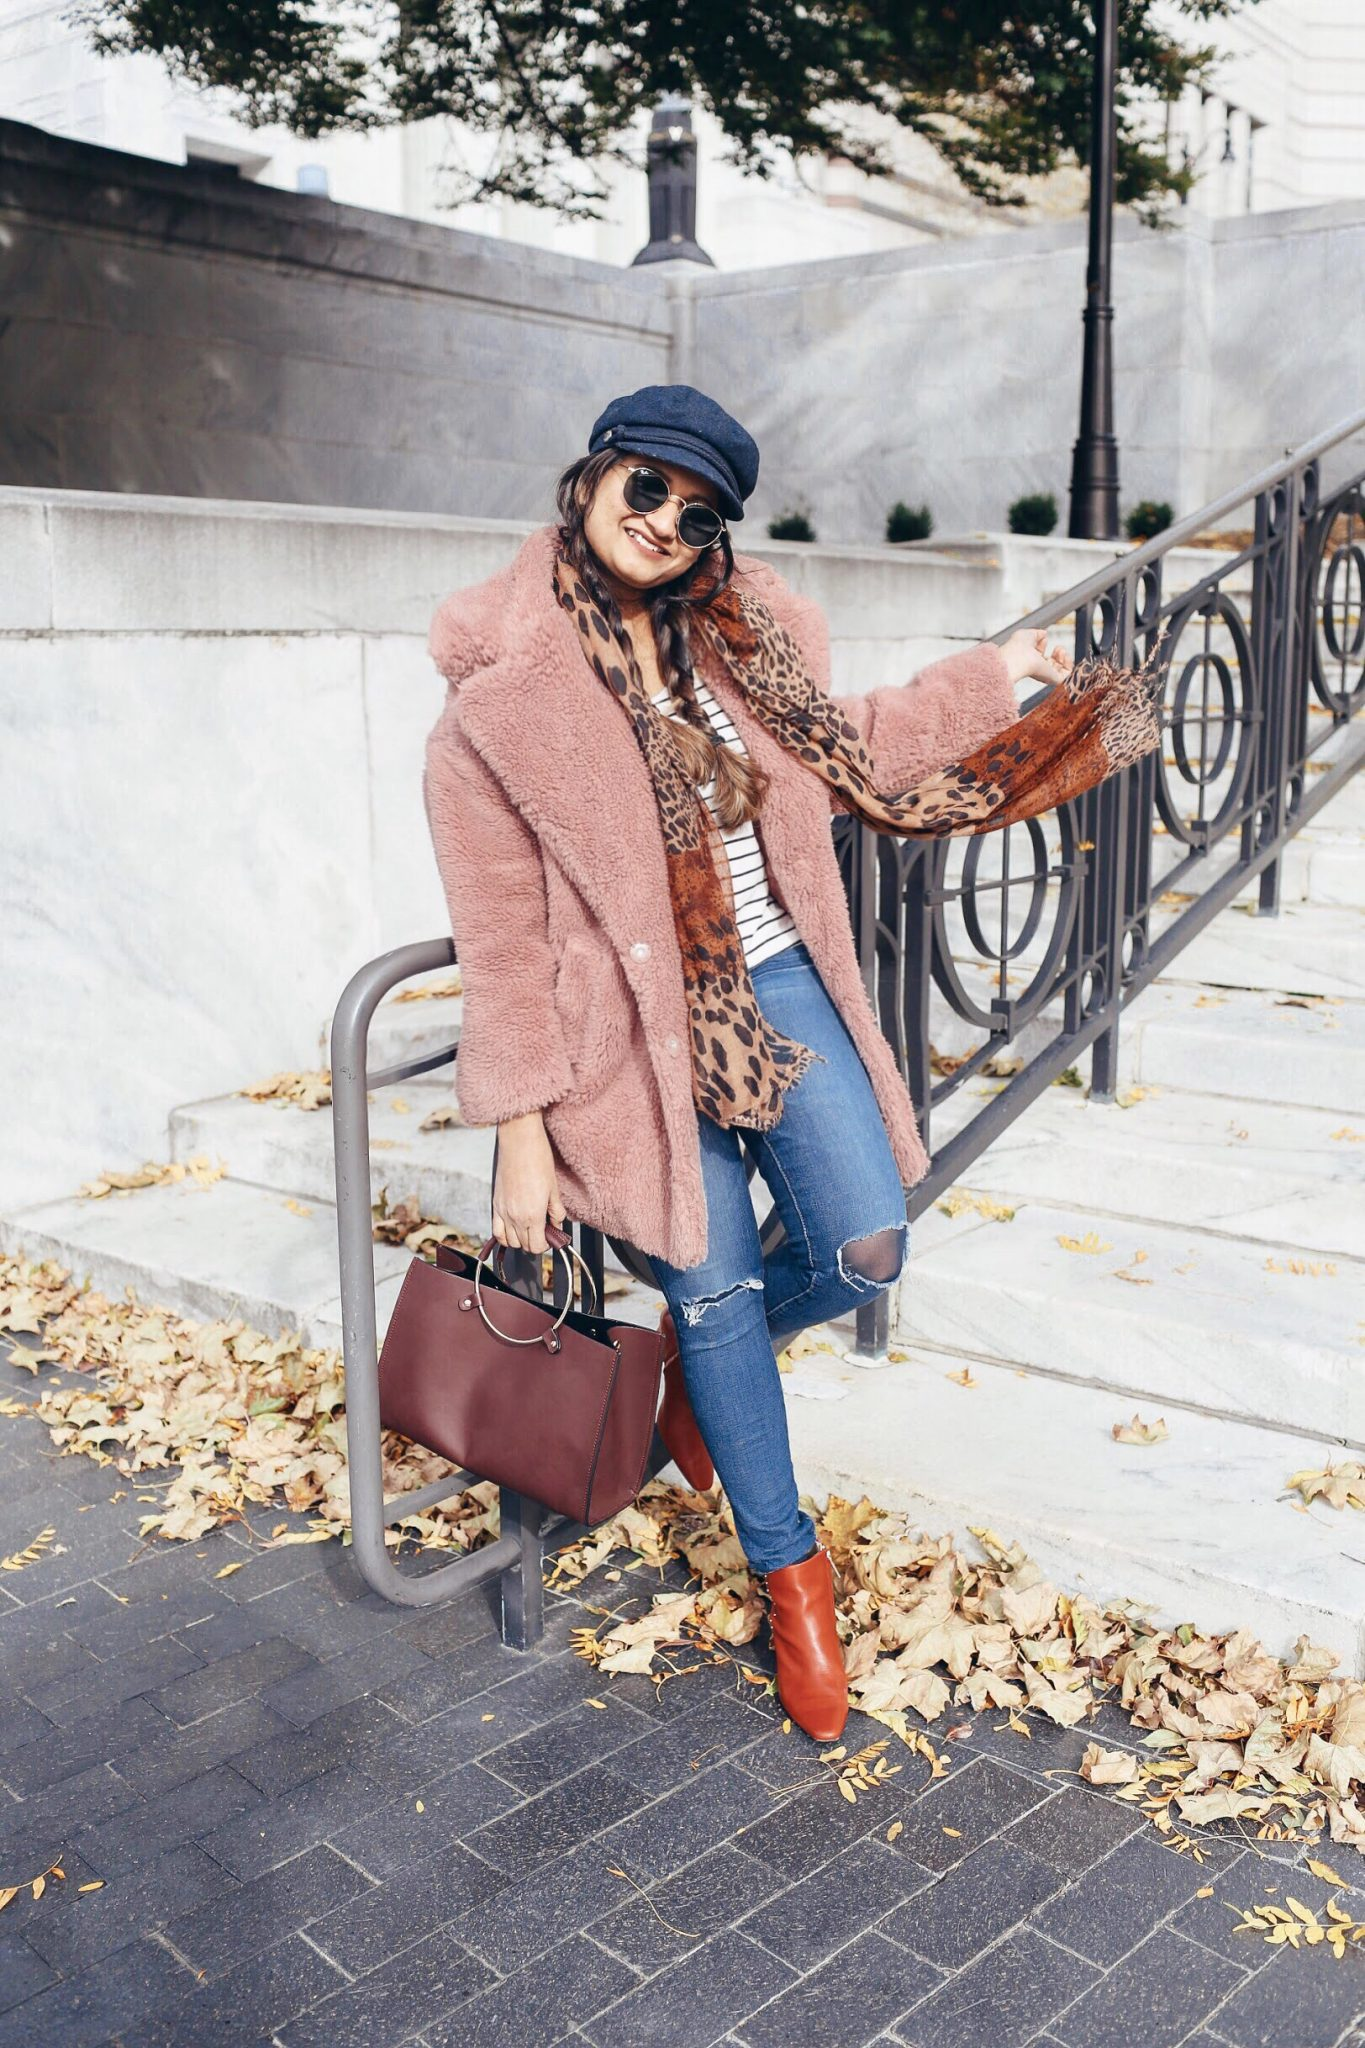 Lifestyle Blogger Surekha of dreaming loud sharing 2018 Winter trending coats 1 .jpg - Top Winter Coat Trends featured by popular Ohio modest fashion blogger, Dreaming Loud